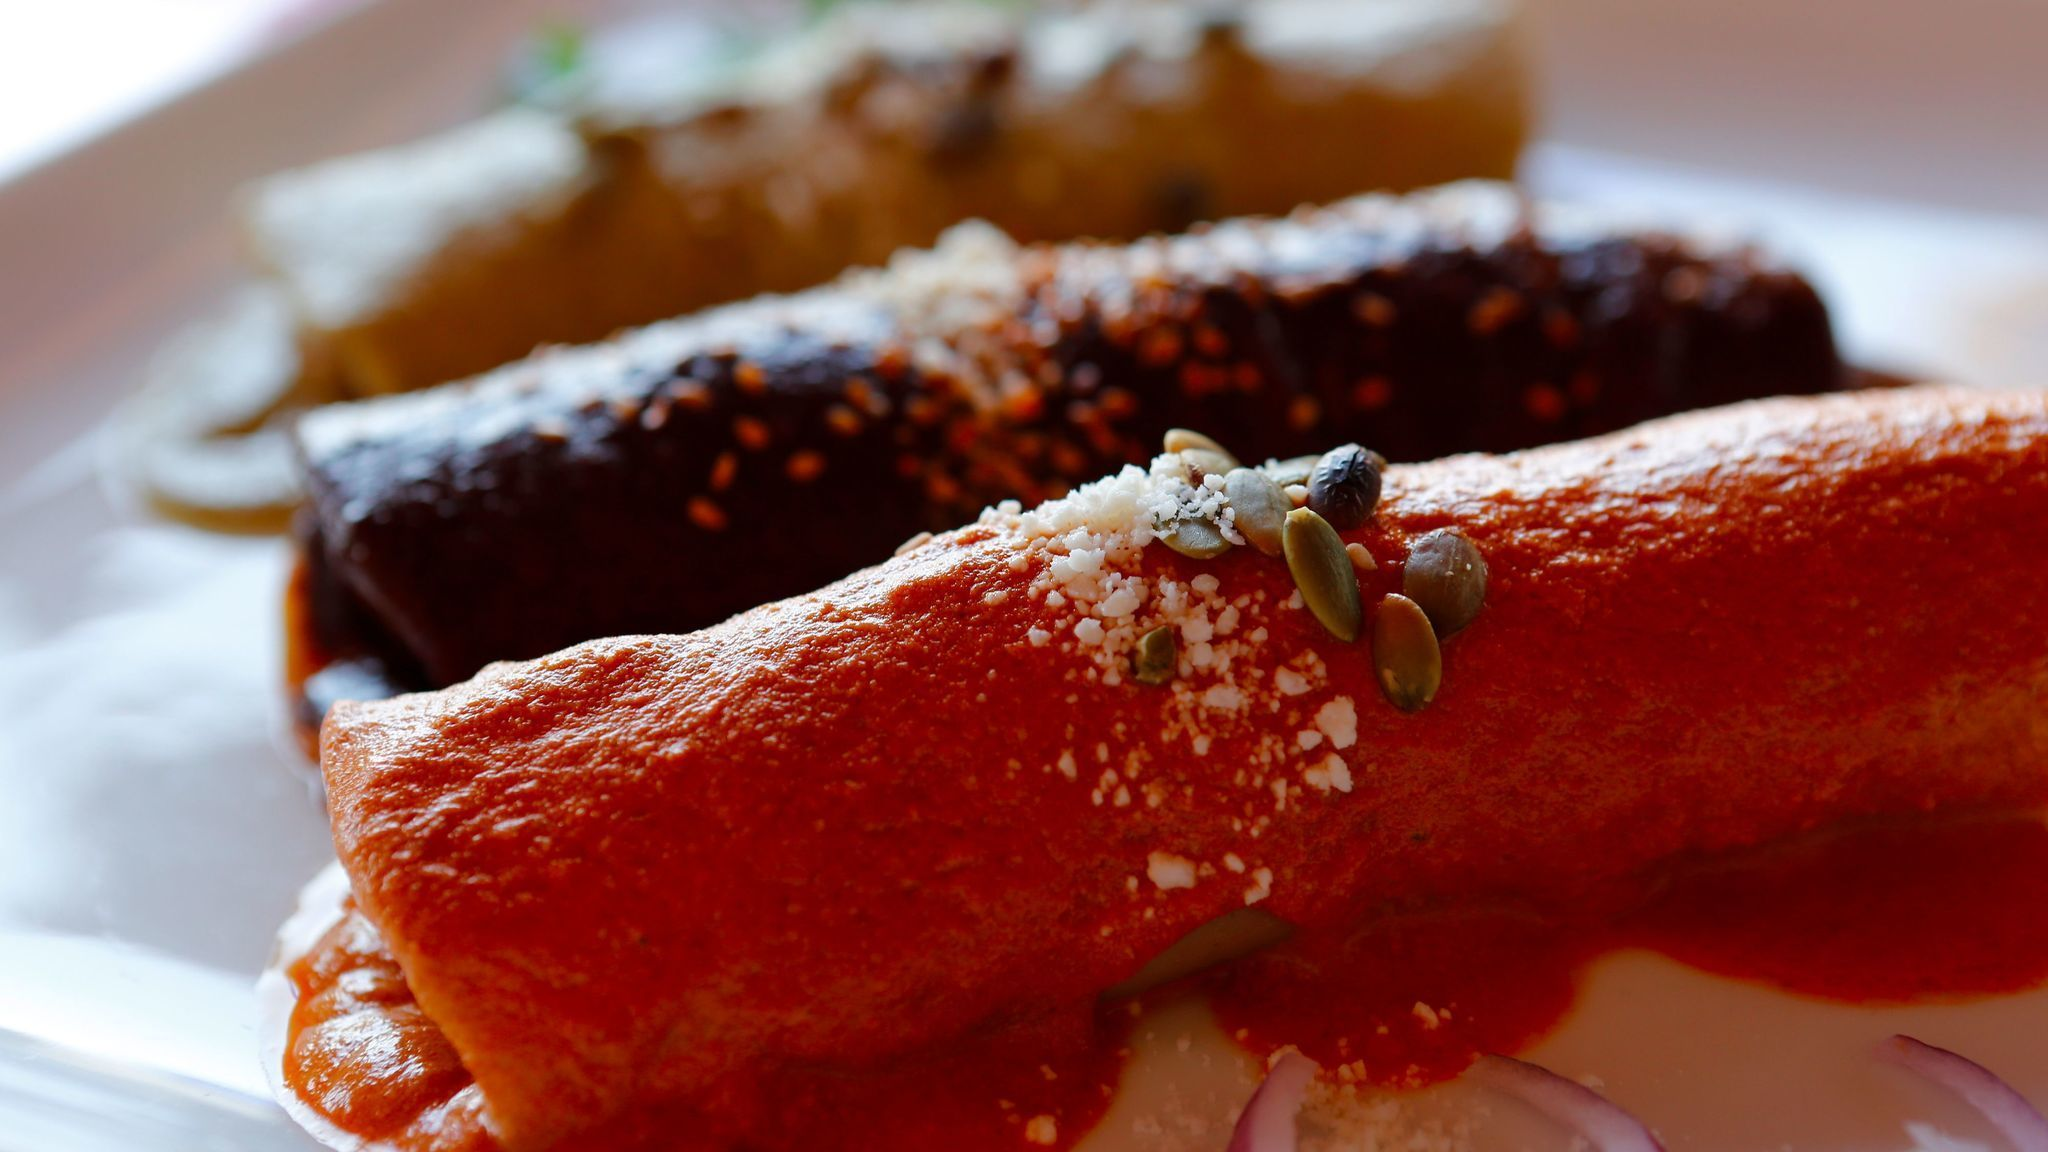 The largest Mexican food festival in the U.S. is happening in Los Angeles. Get ready for mole!